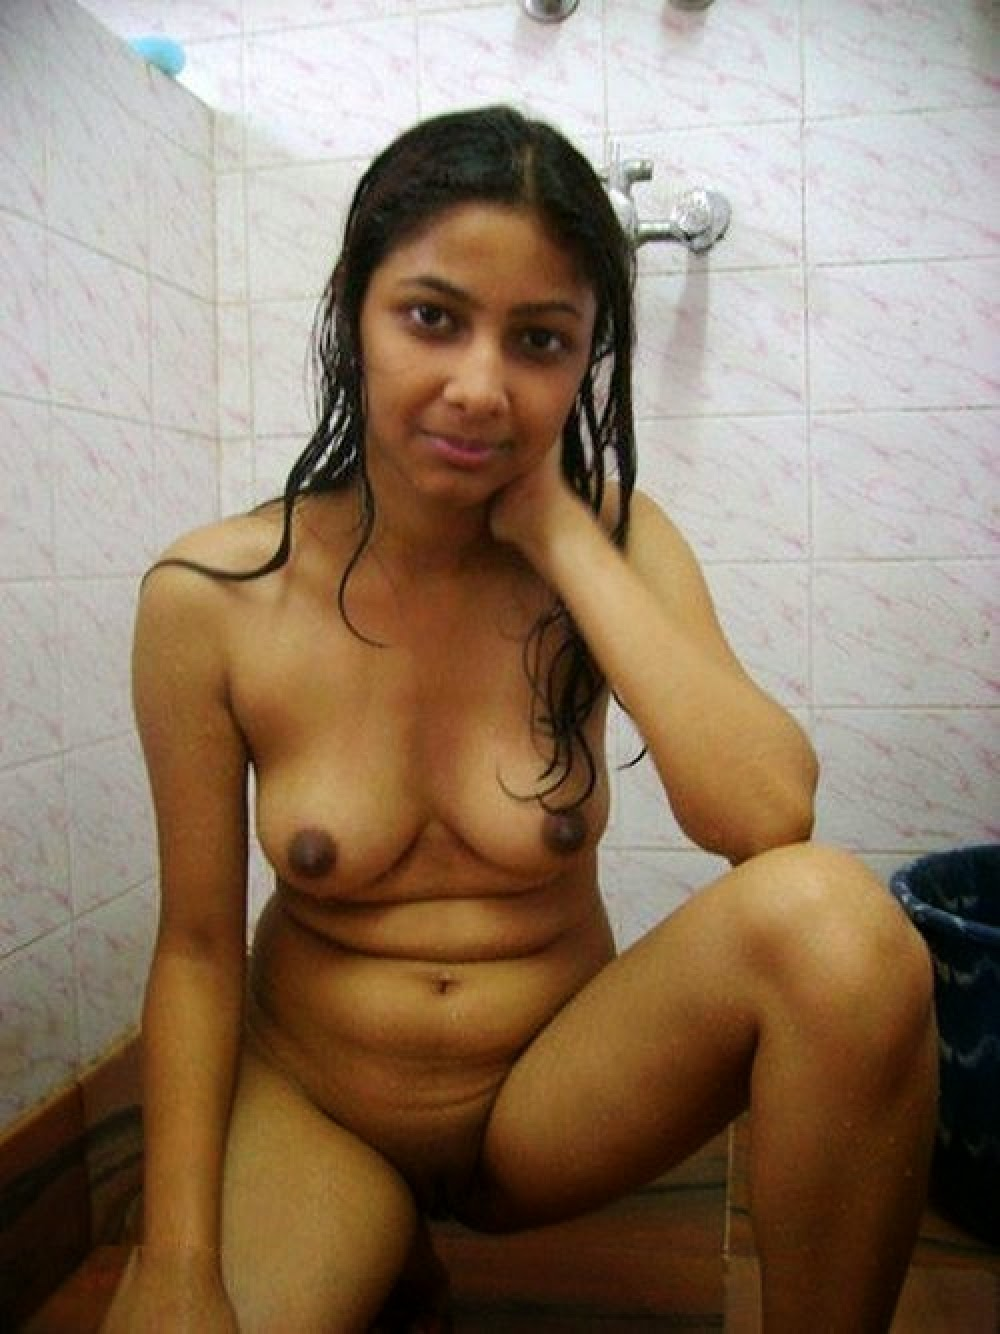 Nude Hot Amateur Indian Girls Sexy Pics-2114